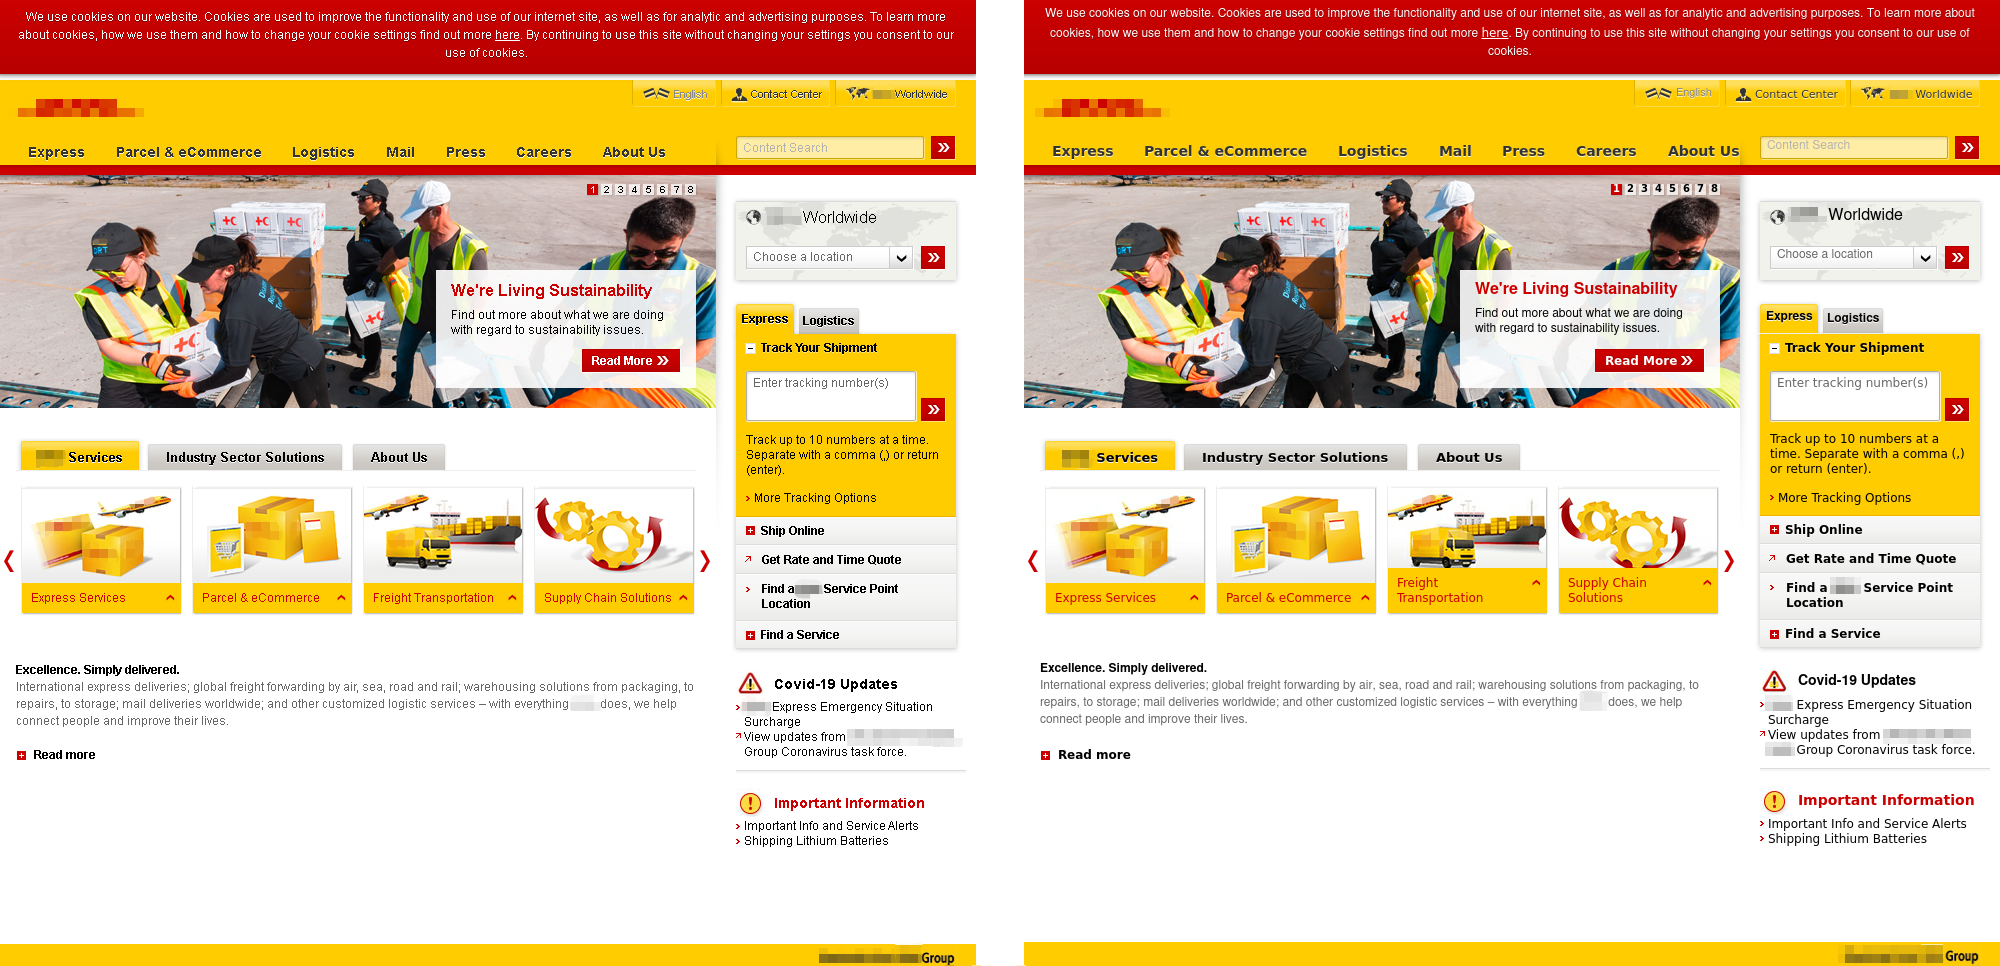 Official website (left) and phishing resource made to look like this website (right)